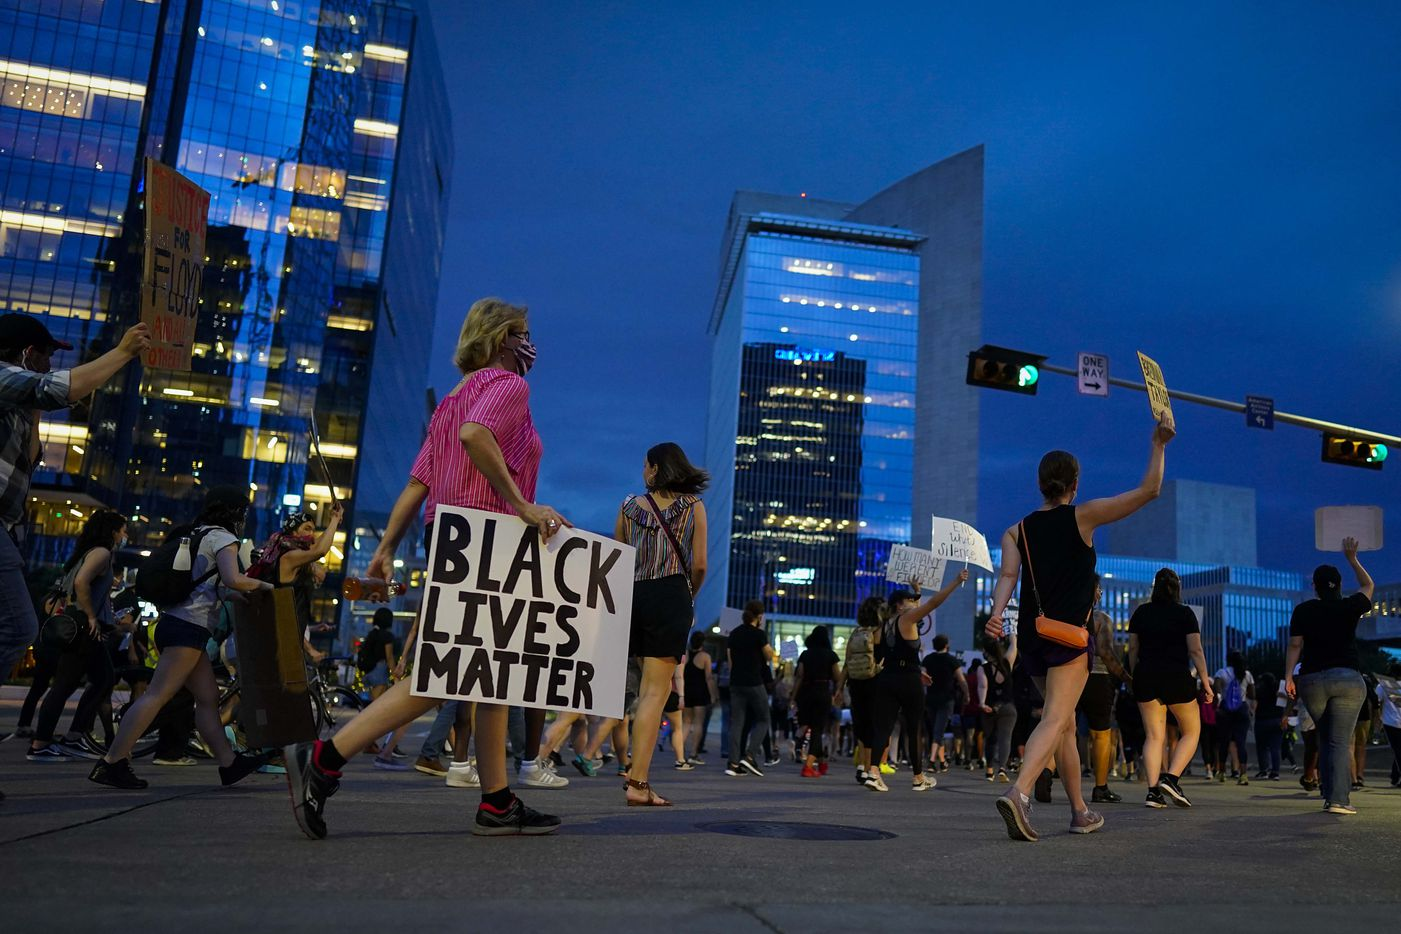 A group of marchers heads toward the Federal Reserve Bank of Dallas after rally for Juneteenth at Klyde Warren Park on Friday, June 19, 2020, in Dallas.